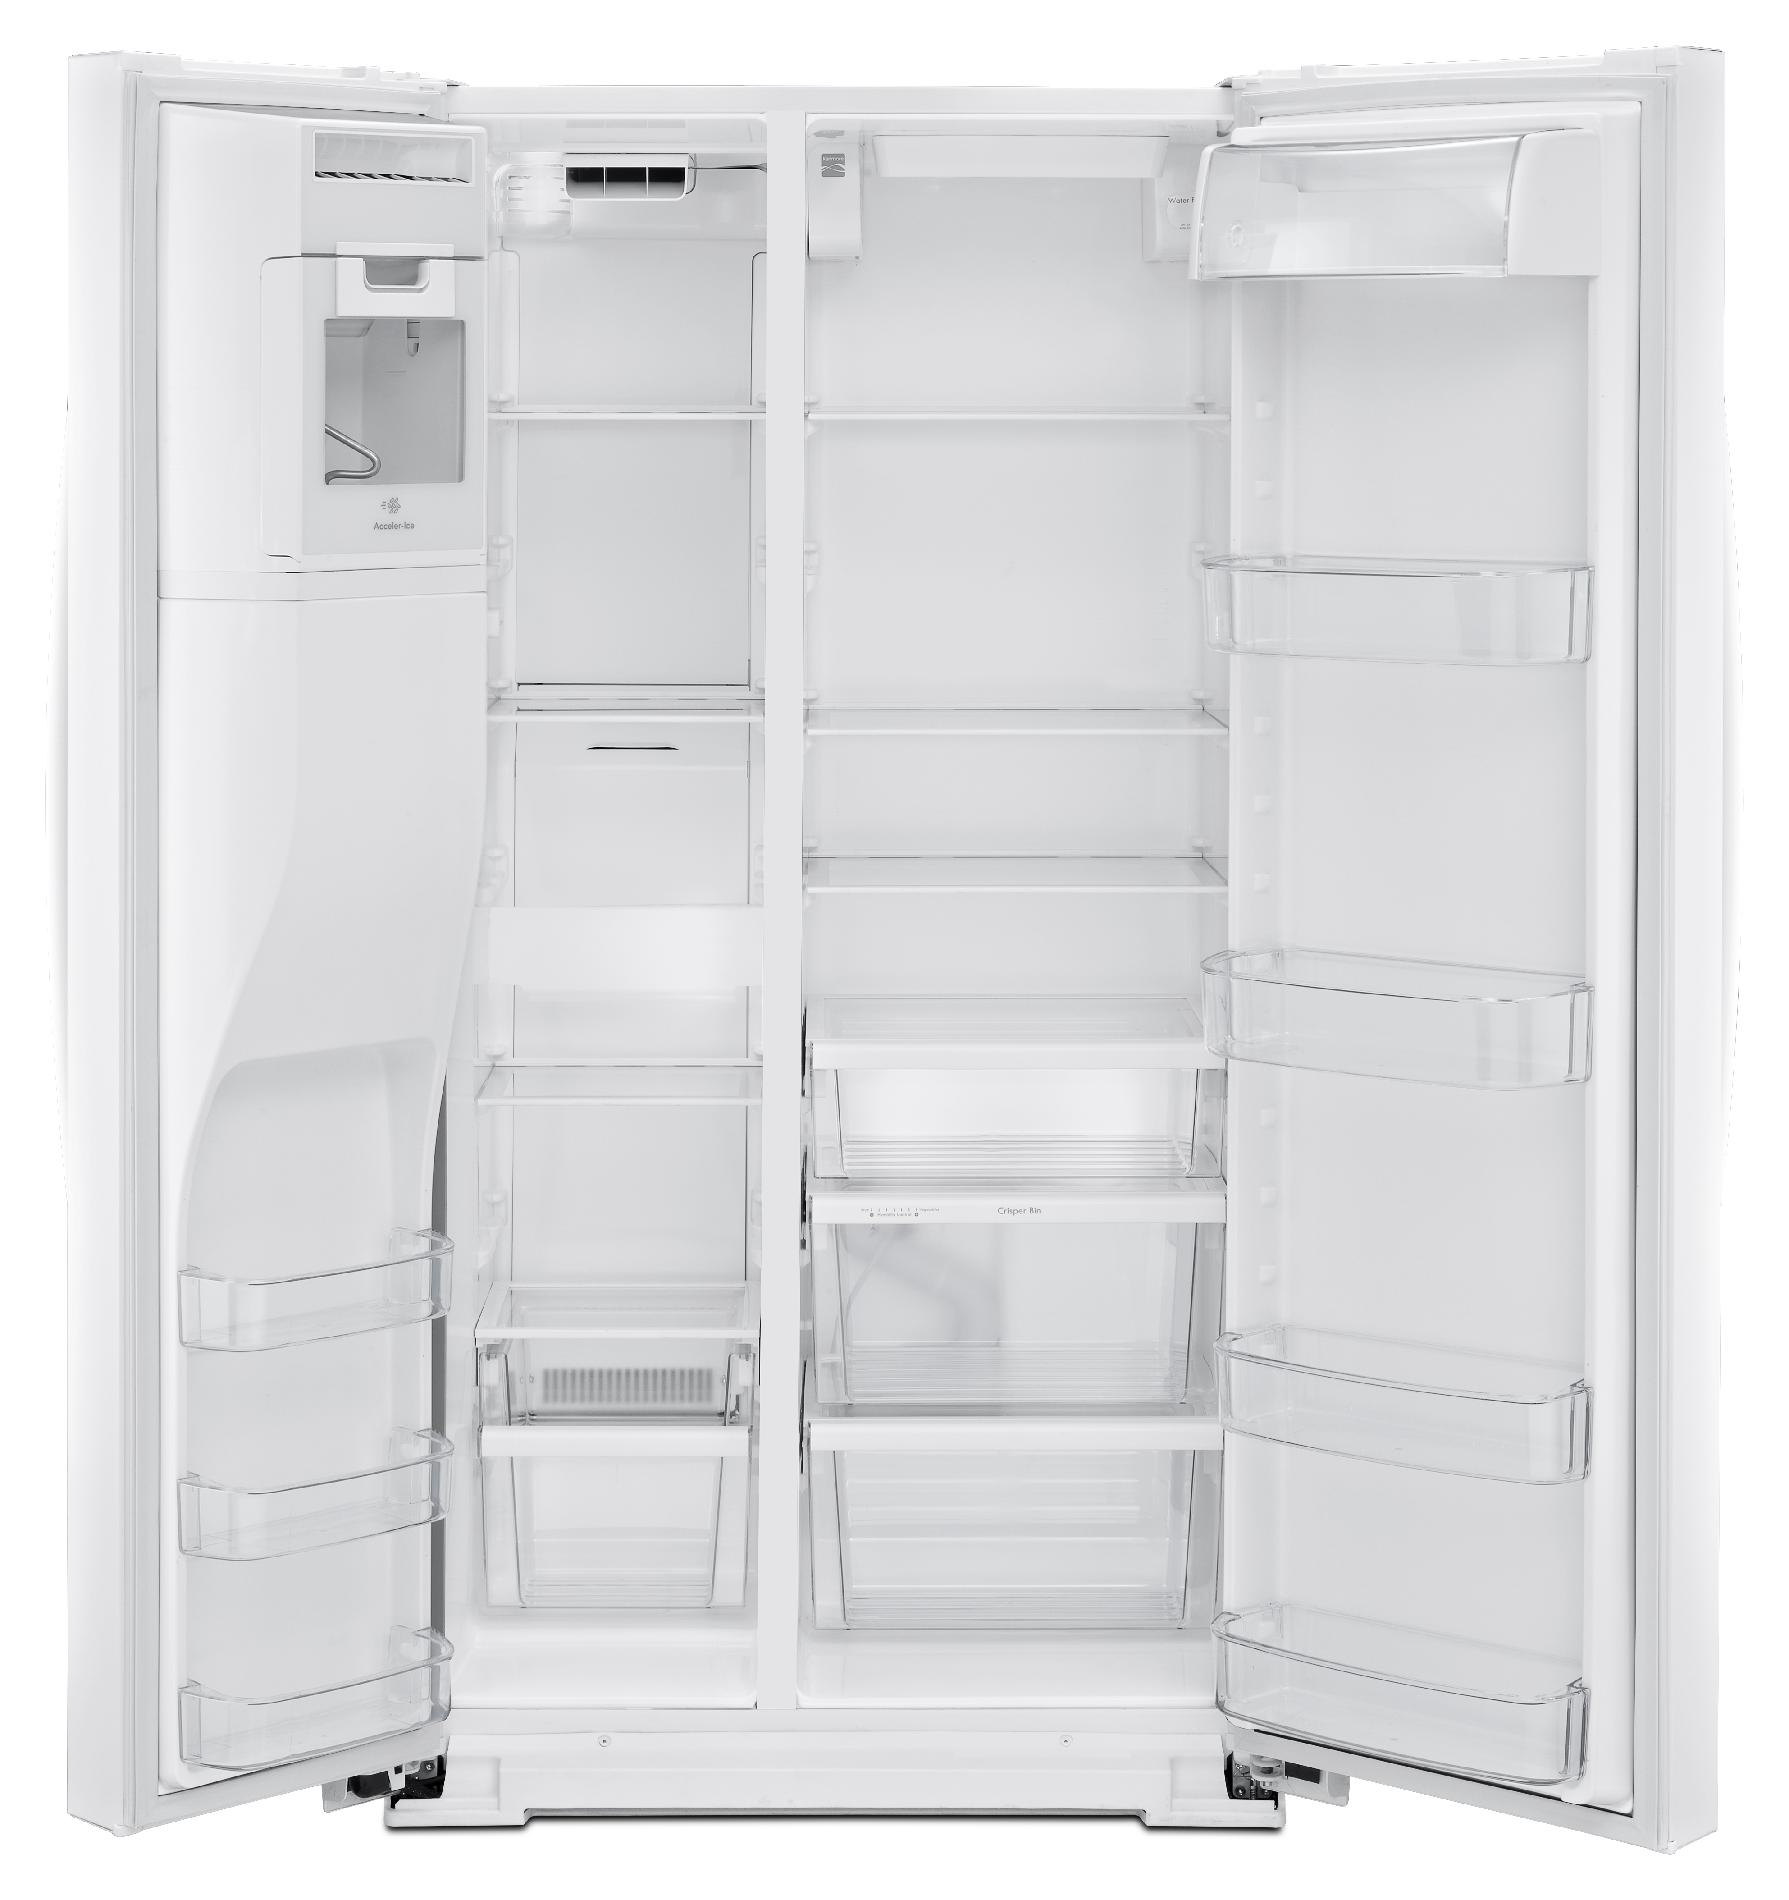 Kenmore 51782 21 cu. ft. Side-by-Side Refrigerator - White